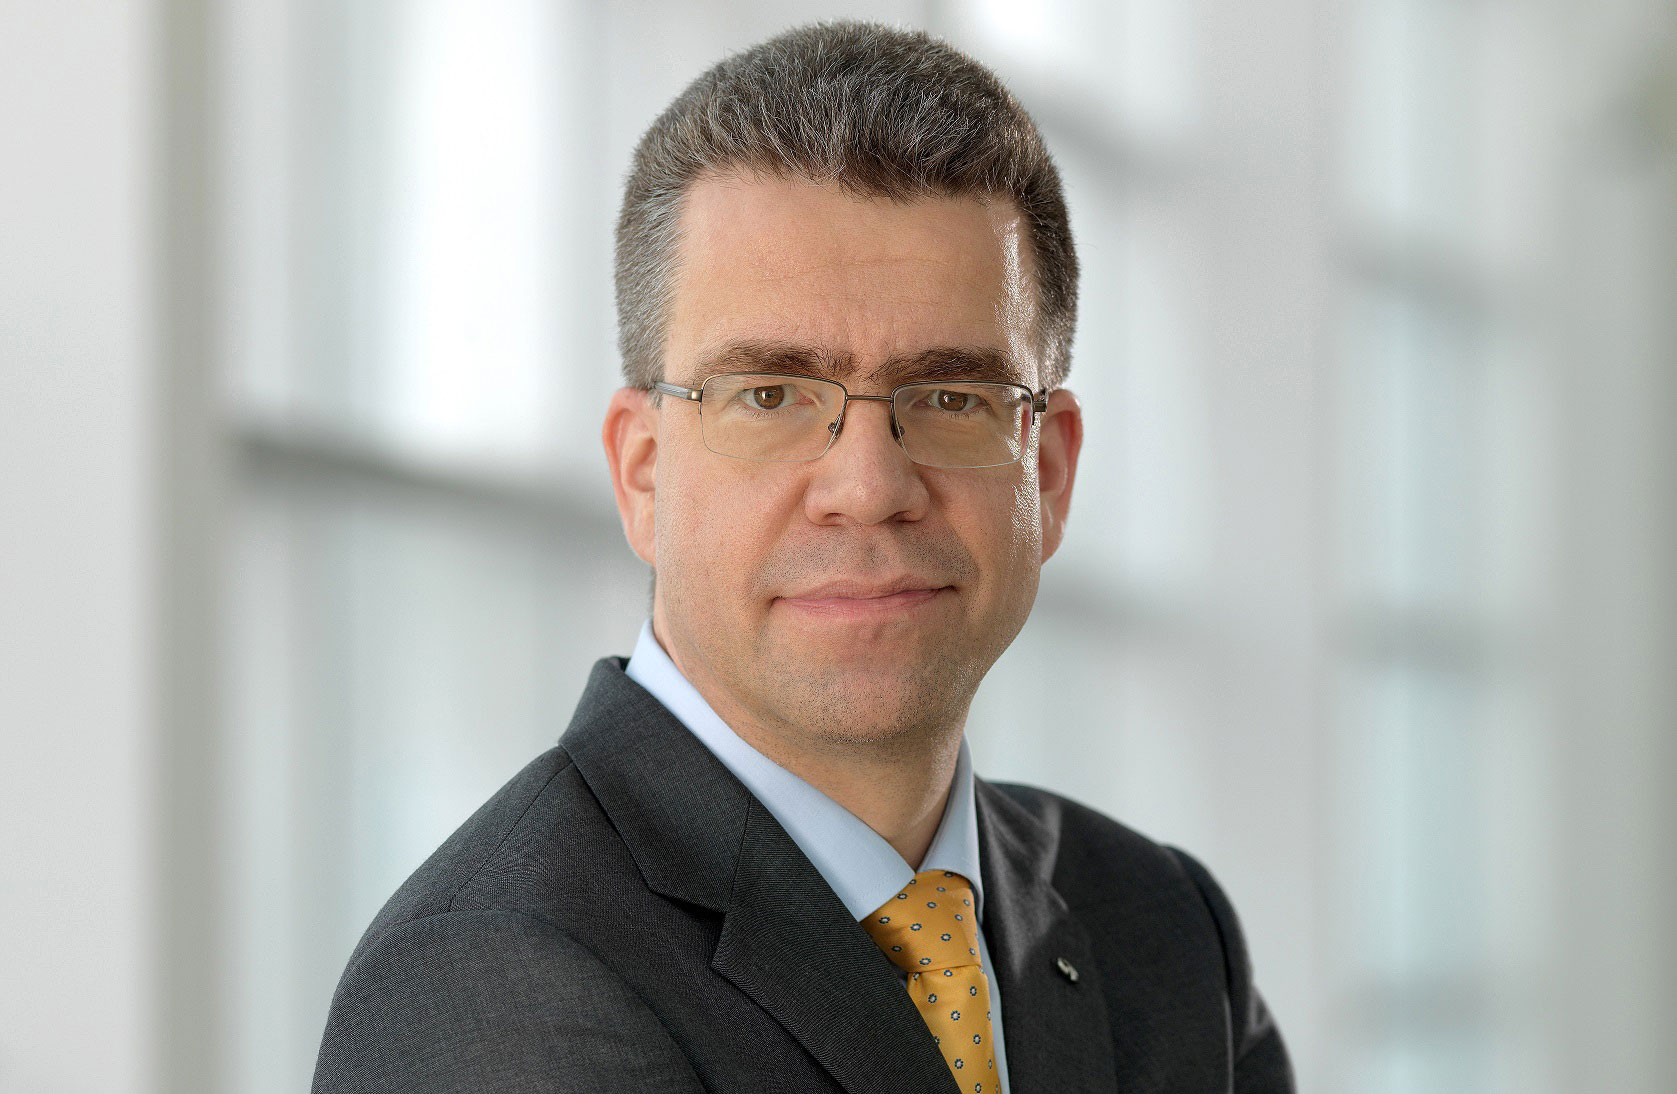 Juergen Schmitz, Managing Director, Infiniti Middle East